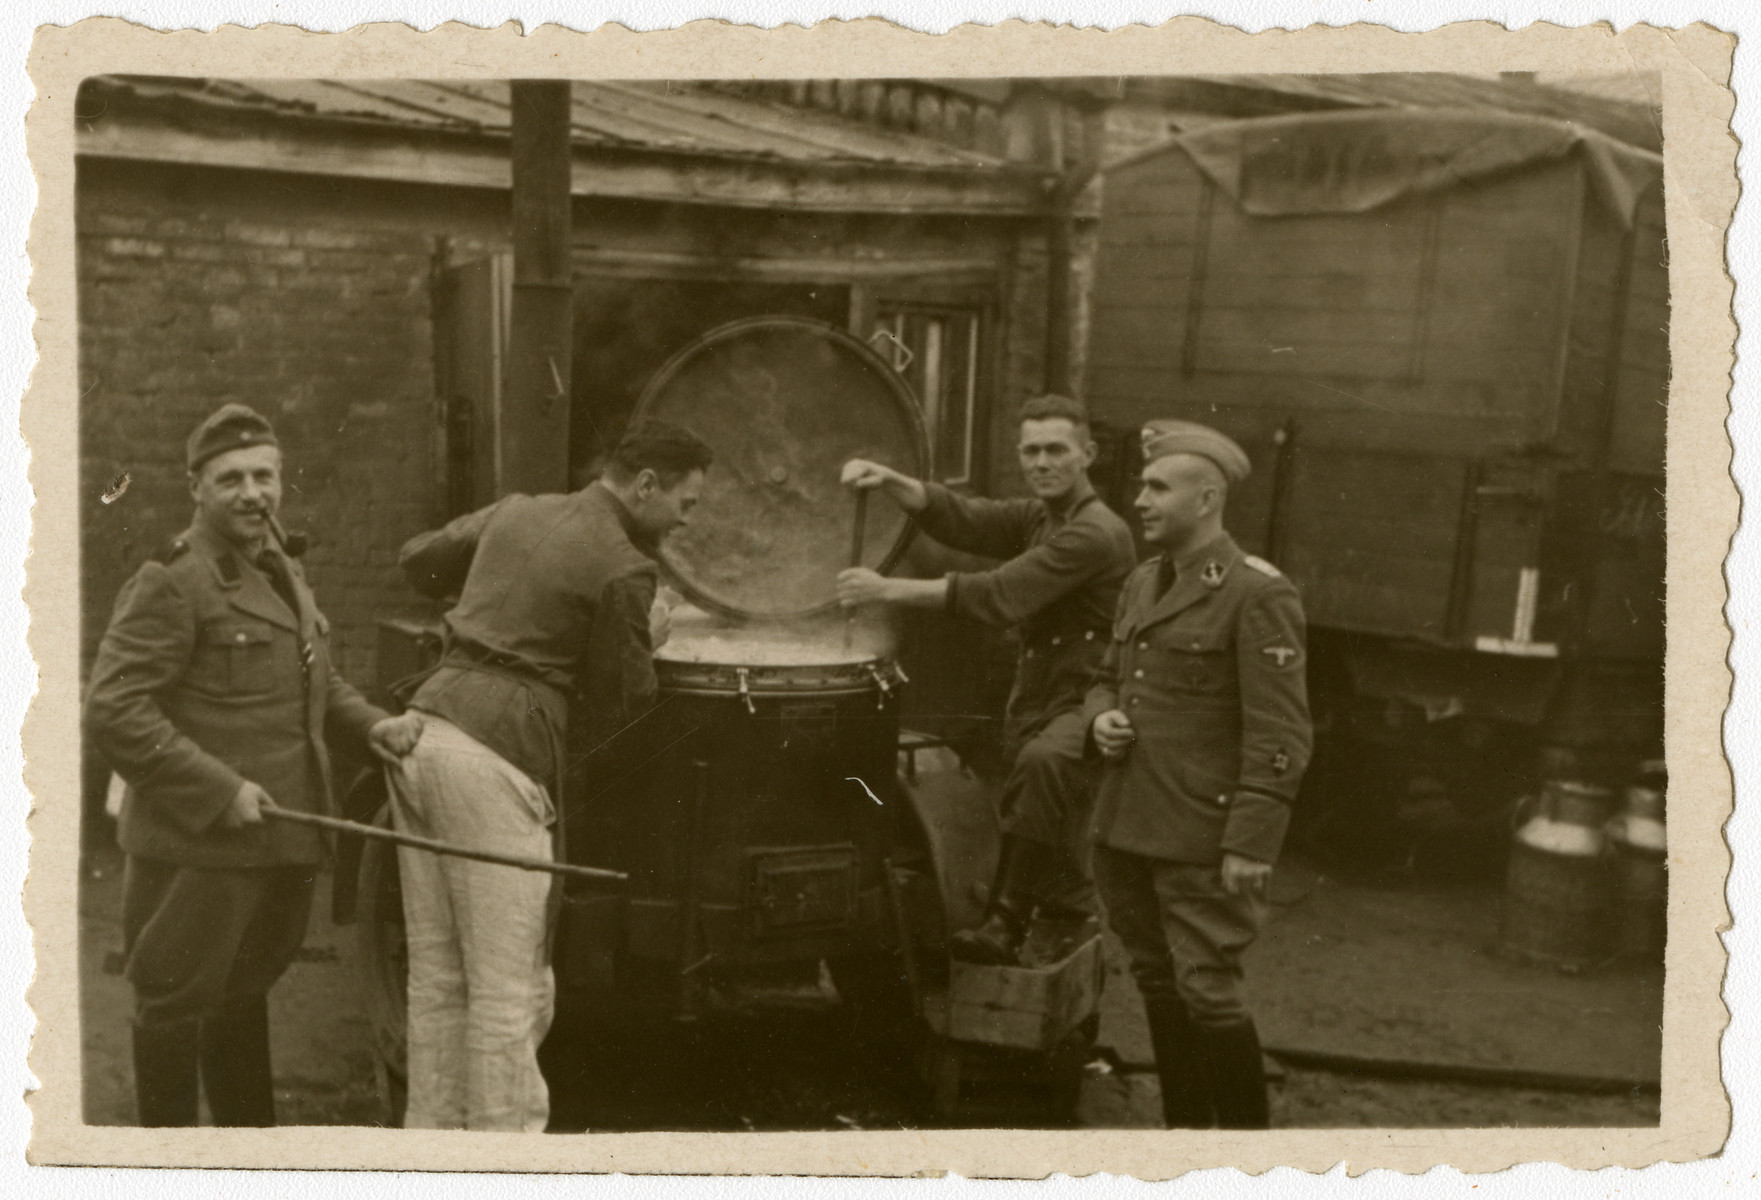 SD personnel pose as they prepare food in a mobile field kitchen.    This image is one of twenty-six contained in an album found by Jacob Igra in an apartment in Sosnowiec after the war. Many of the photographs are believed to have been taken by a soldier with the SD-SIPO (Sicherheitspolizei) following the invasion of Poland in 1939. Additional photographs depict einsatzgruppen activities at sites throughout Nazi occupied Eastern Europe and may have been later additions to the album.